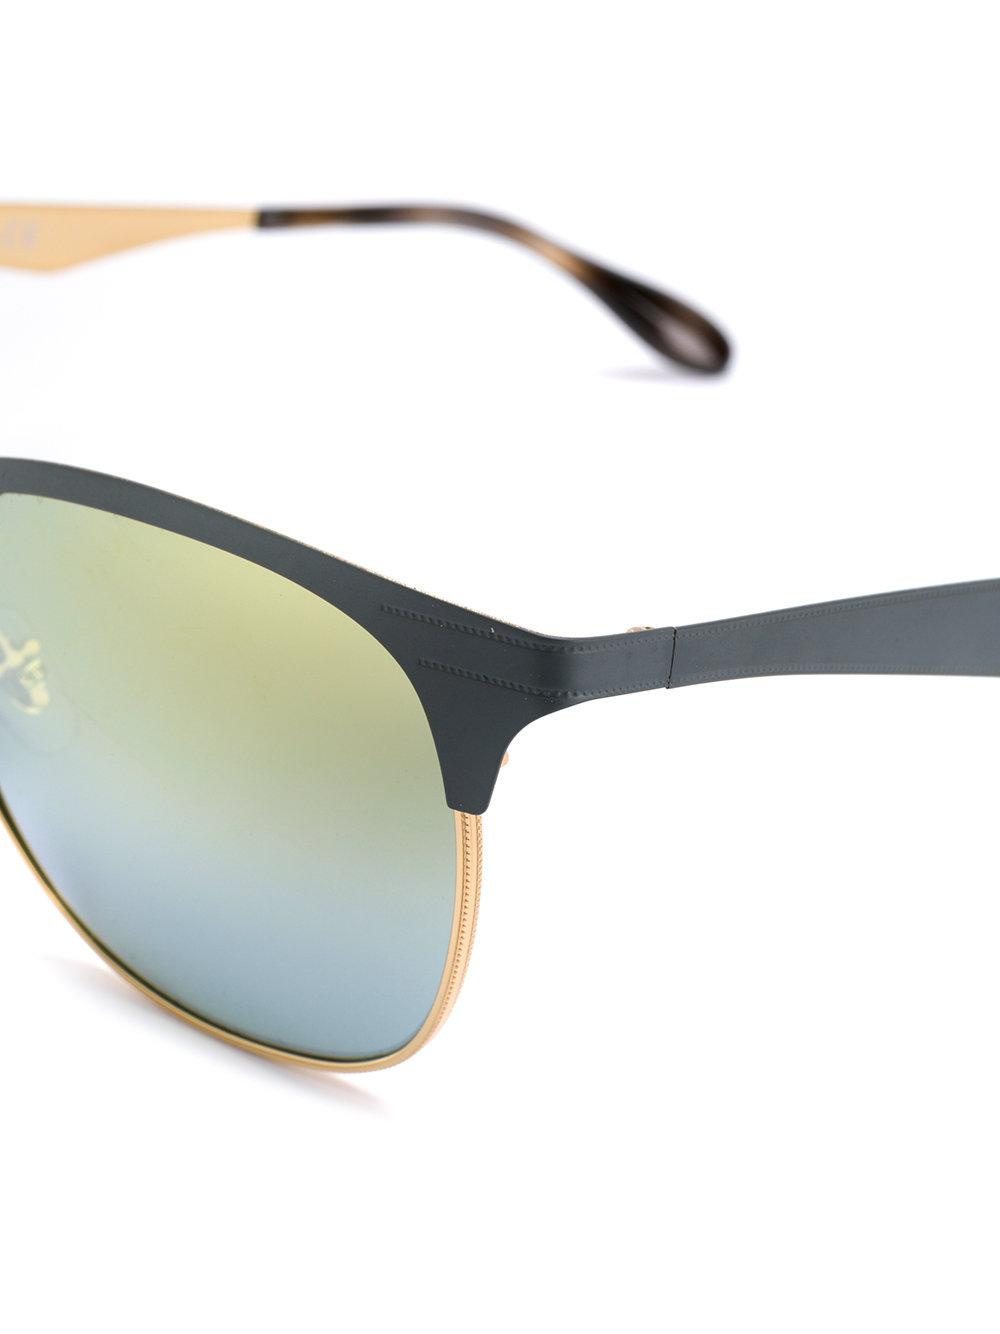 Ray-Ban Clubmaster Sunglasses in Grey (Grey)